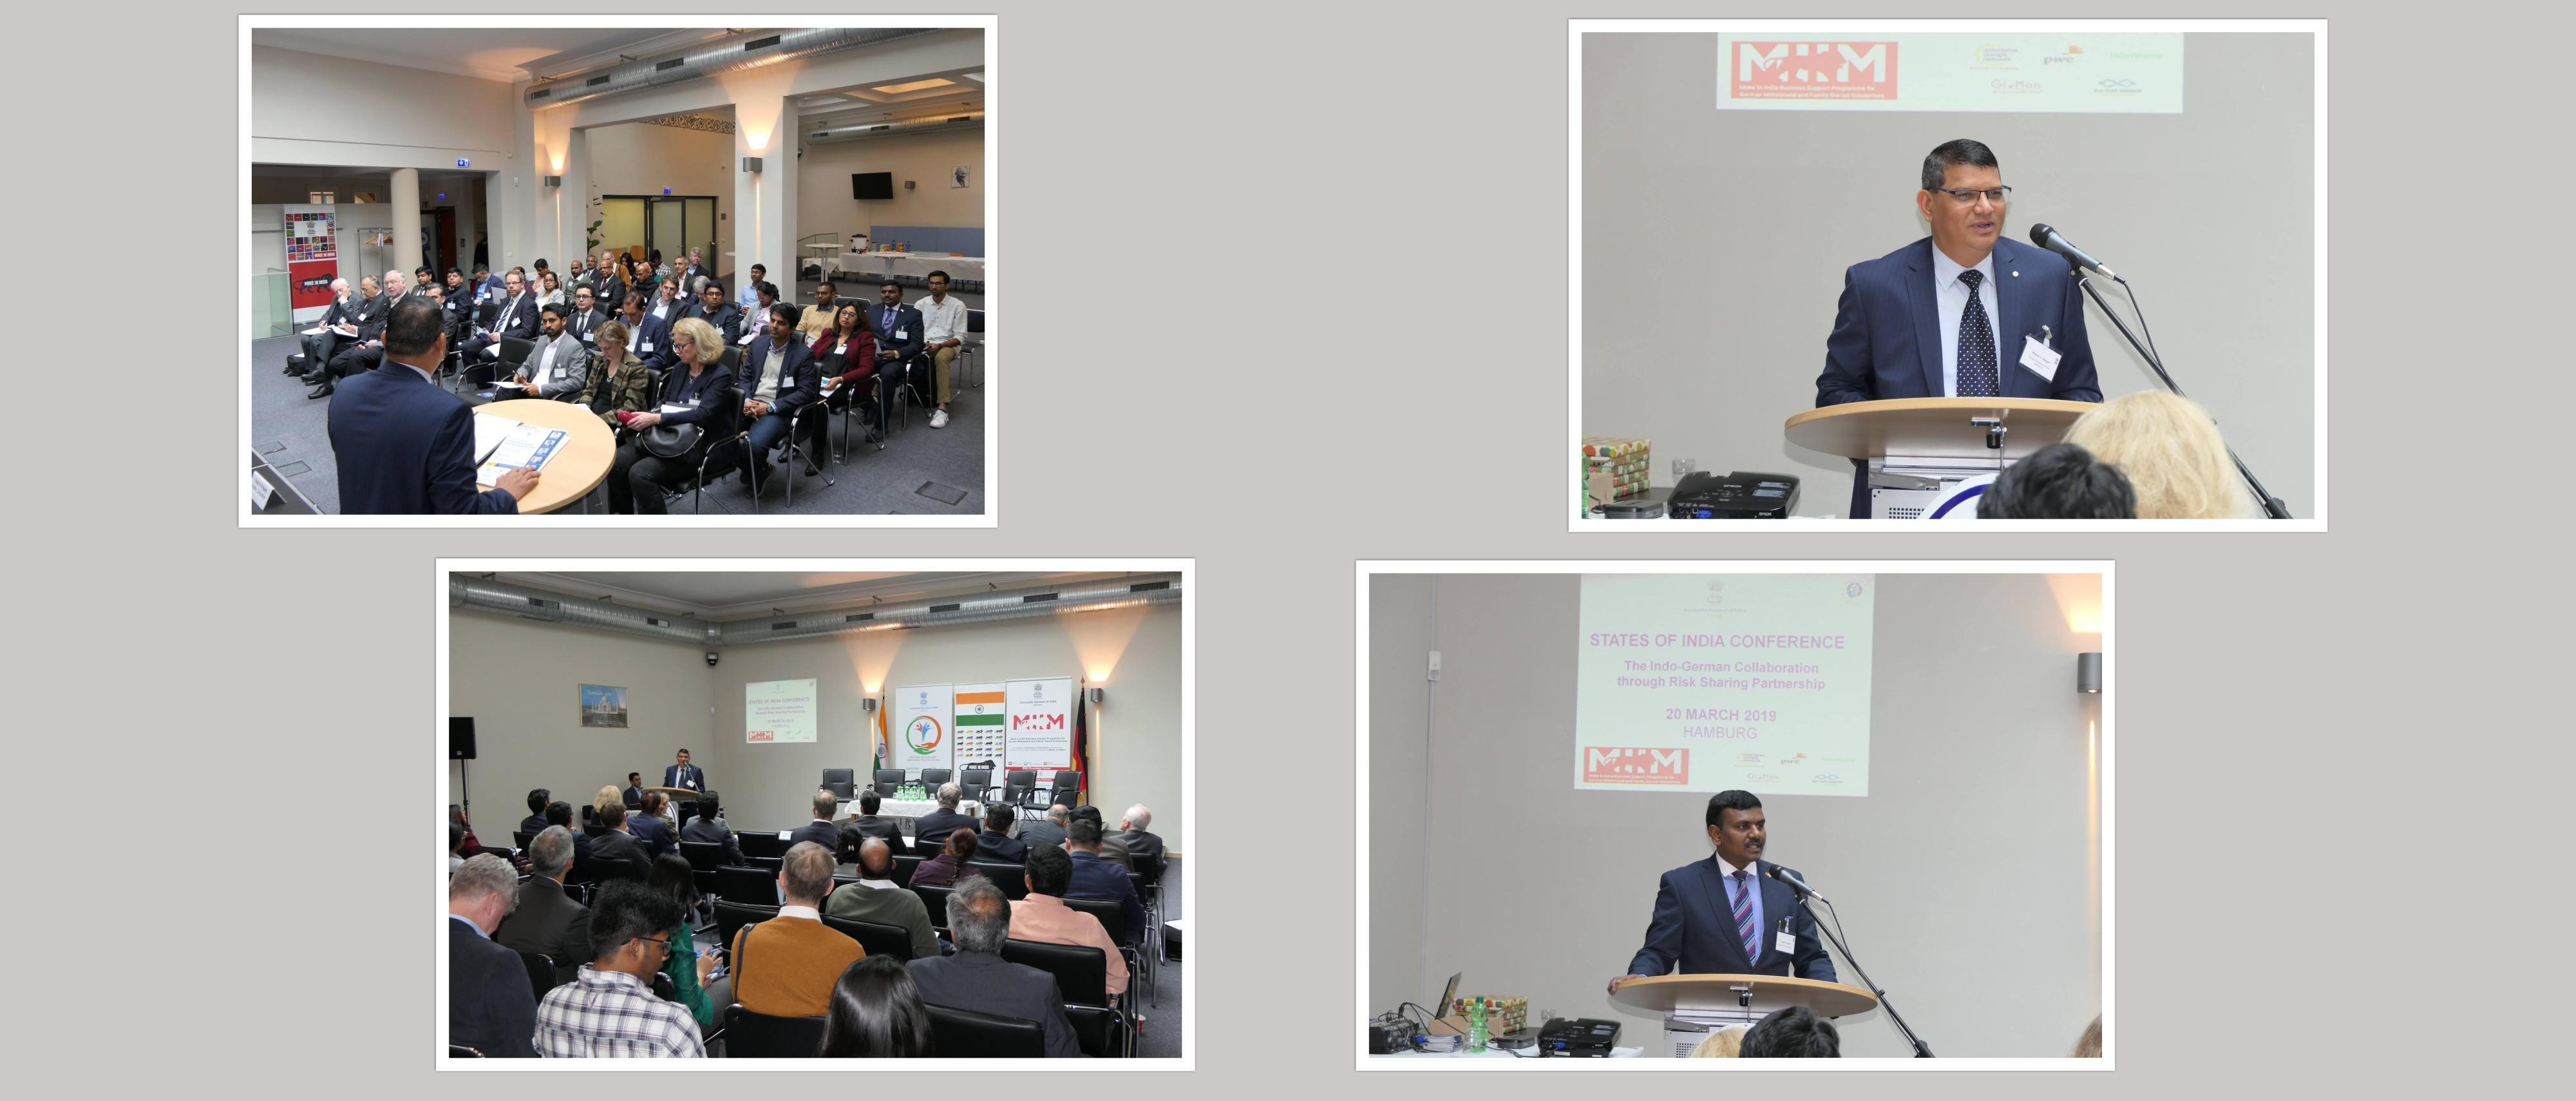 State of India Conference at Hamburg (March 20, 2019)